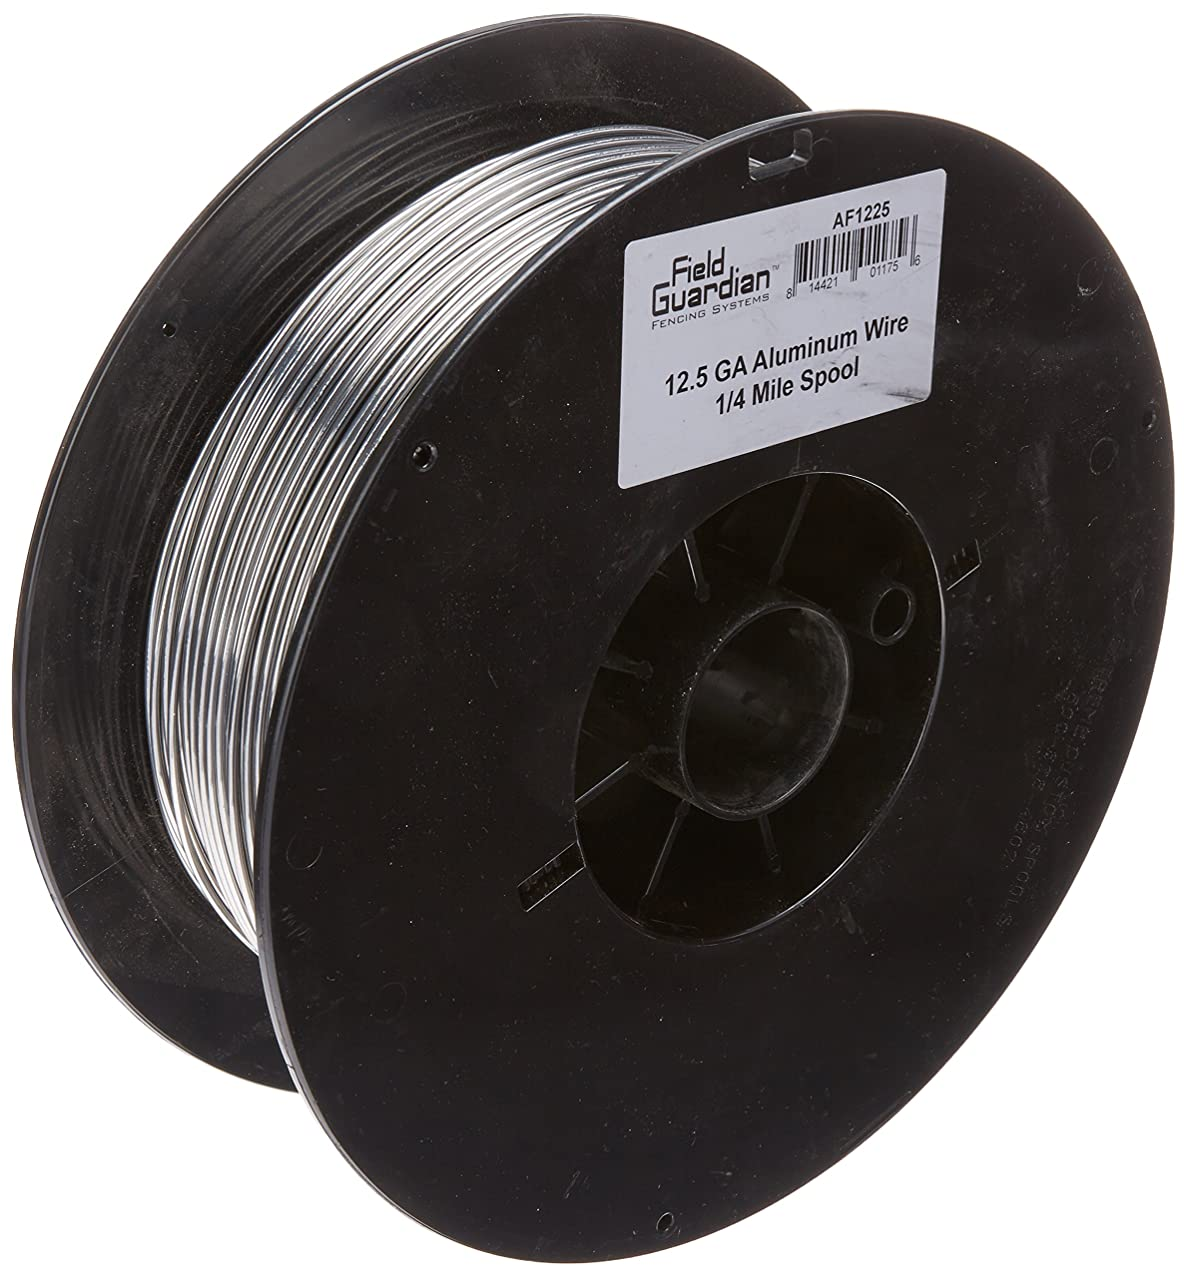 Field Guardian 12-1/2-Guage Aluminum Wire, 1/4 Miles